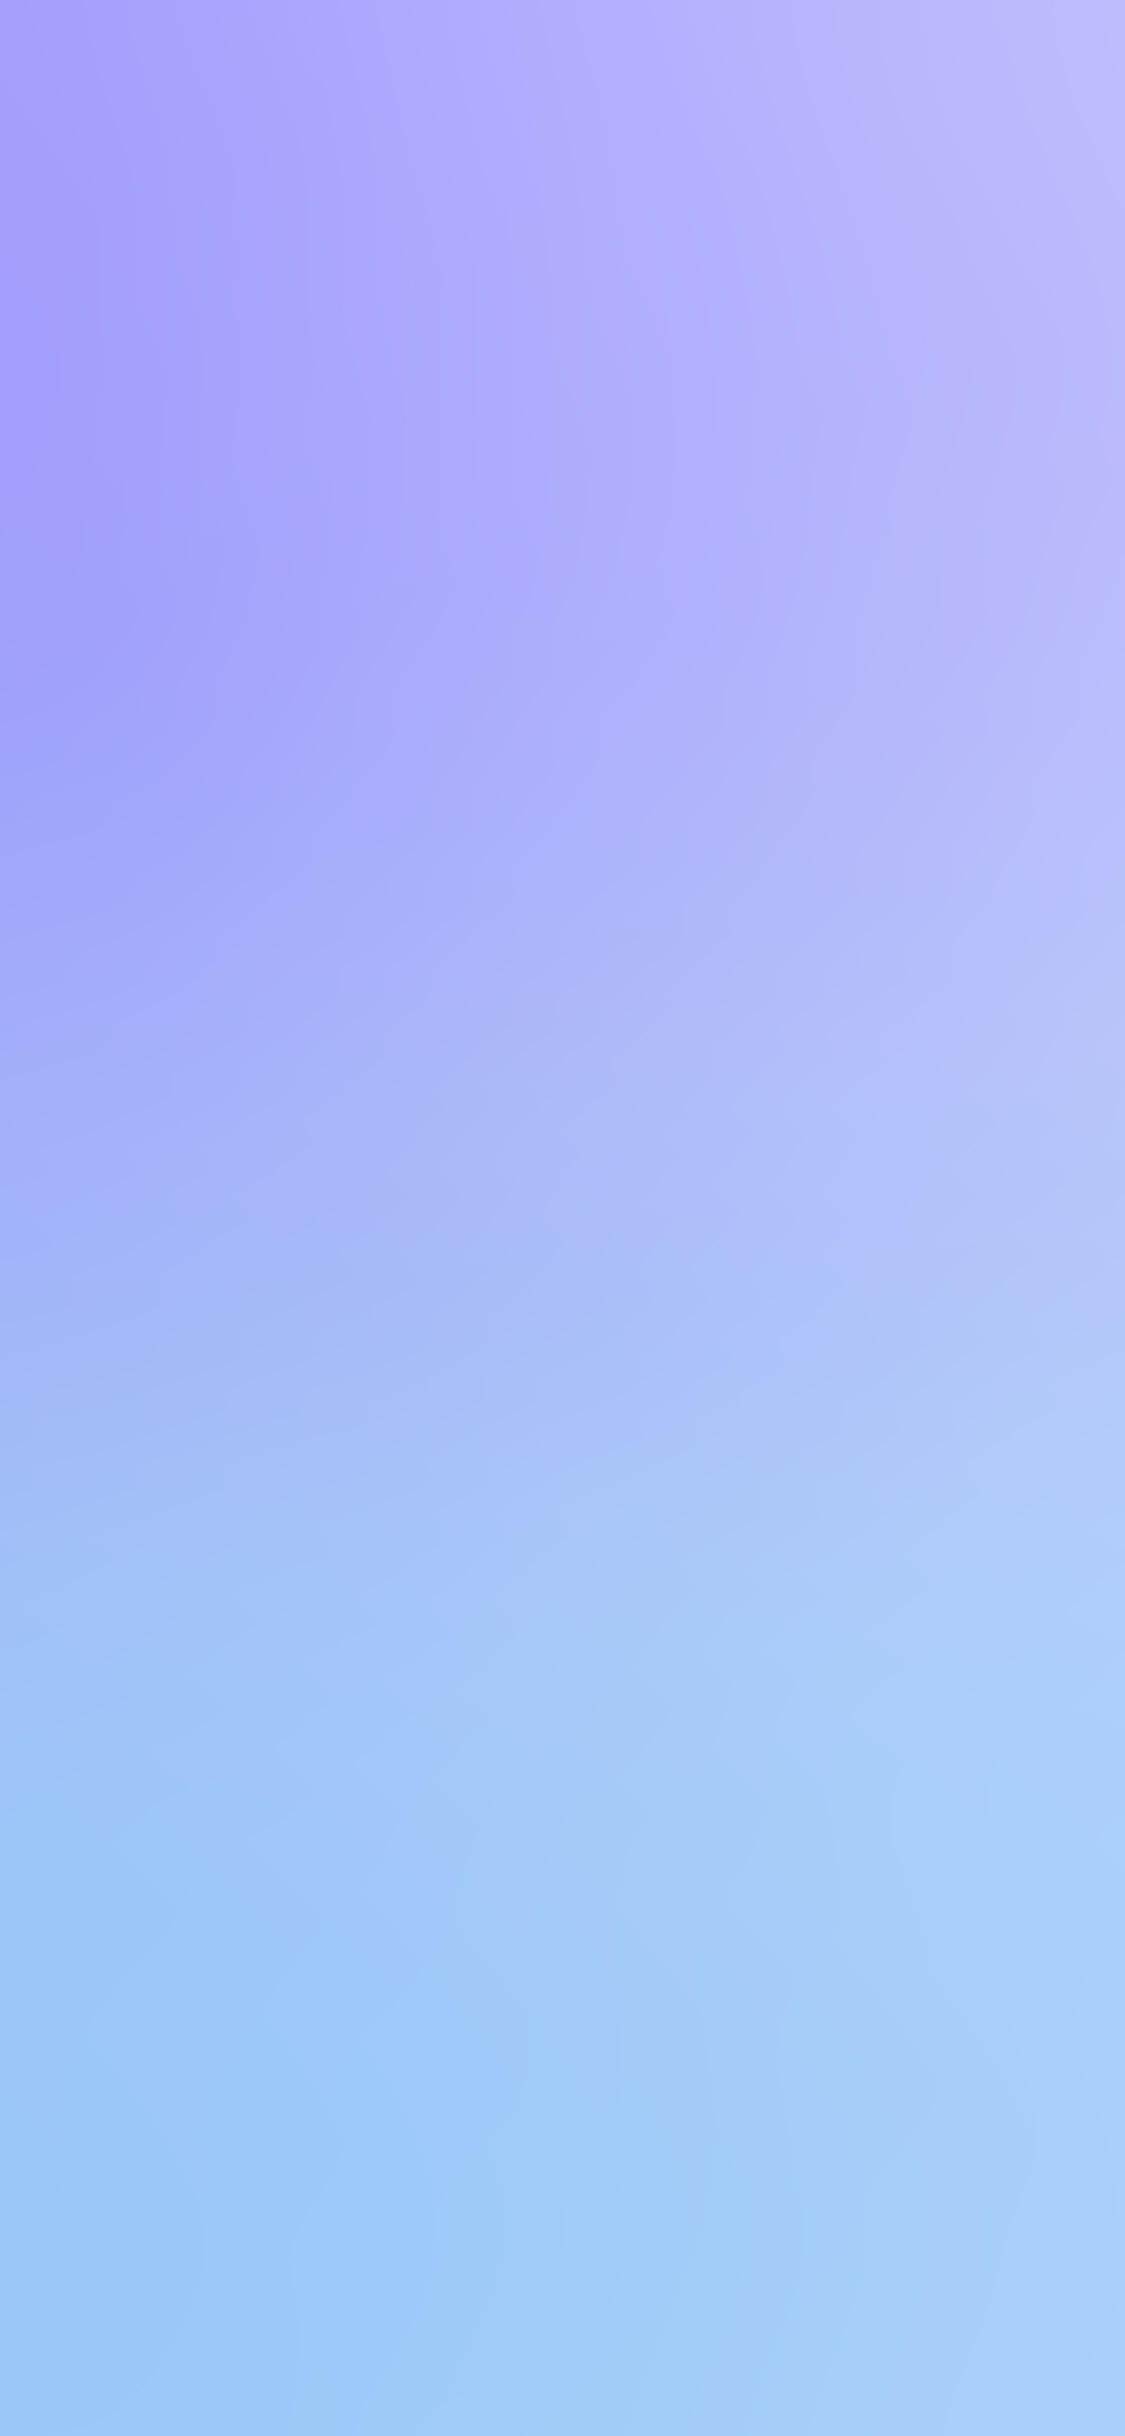 iPhonexpapers.com-Apple-iPhone-wallpaper-sm62-purple-blue-blur-gradation